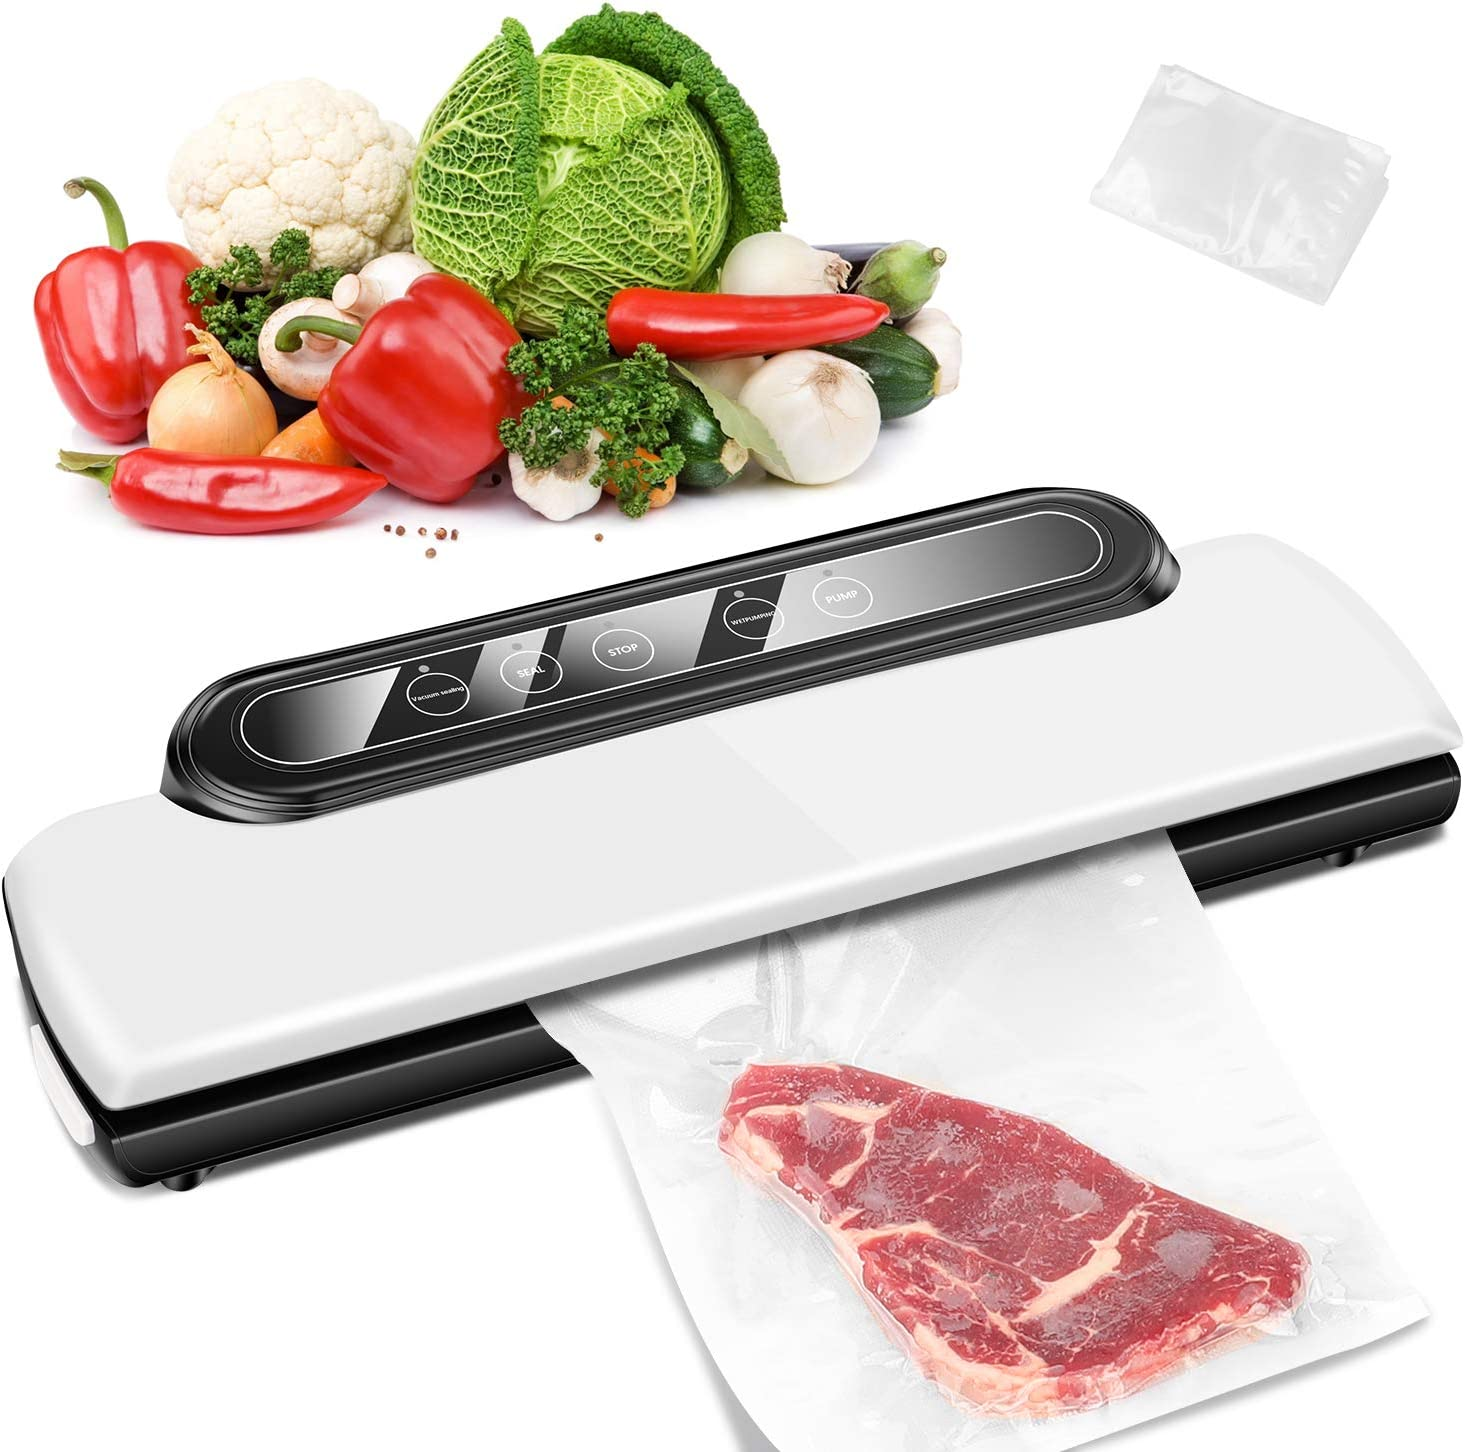 Vacuum Sealer Machine,Anyoug Automatic Food Sealer for Food Savers,Compact Vacuum Packing Machine For Food Preservation with 10 PCS Vacuum Bags, Dry & Moist Food Modes, Led Indicator Lights White